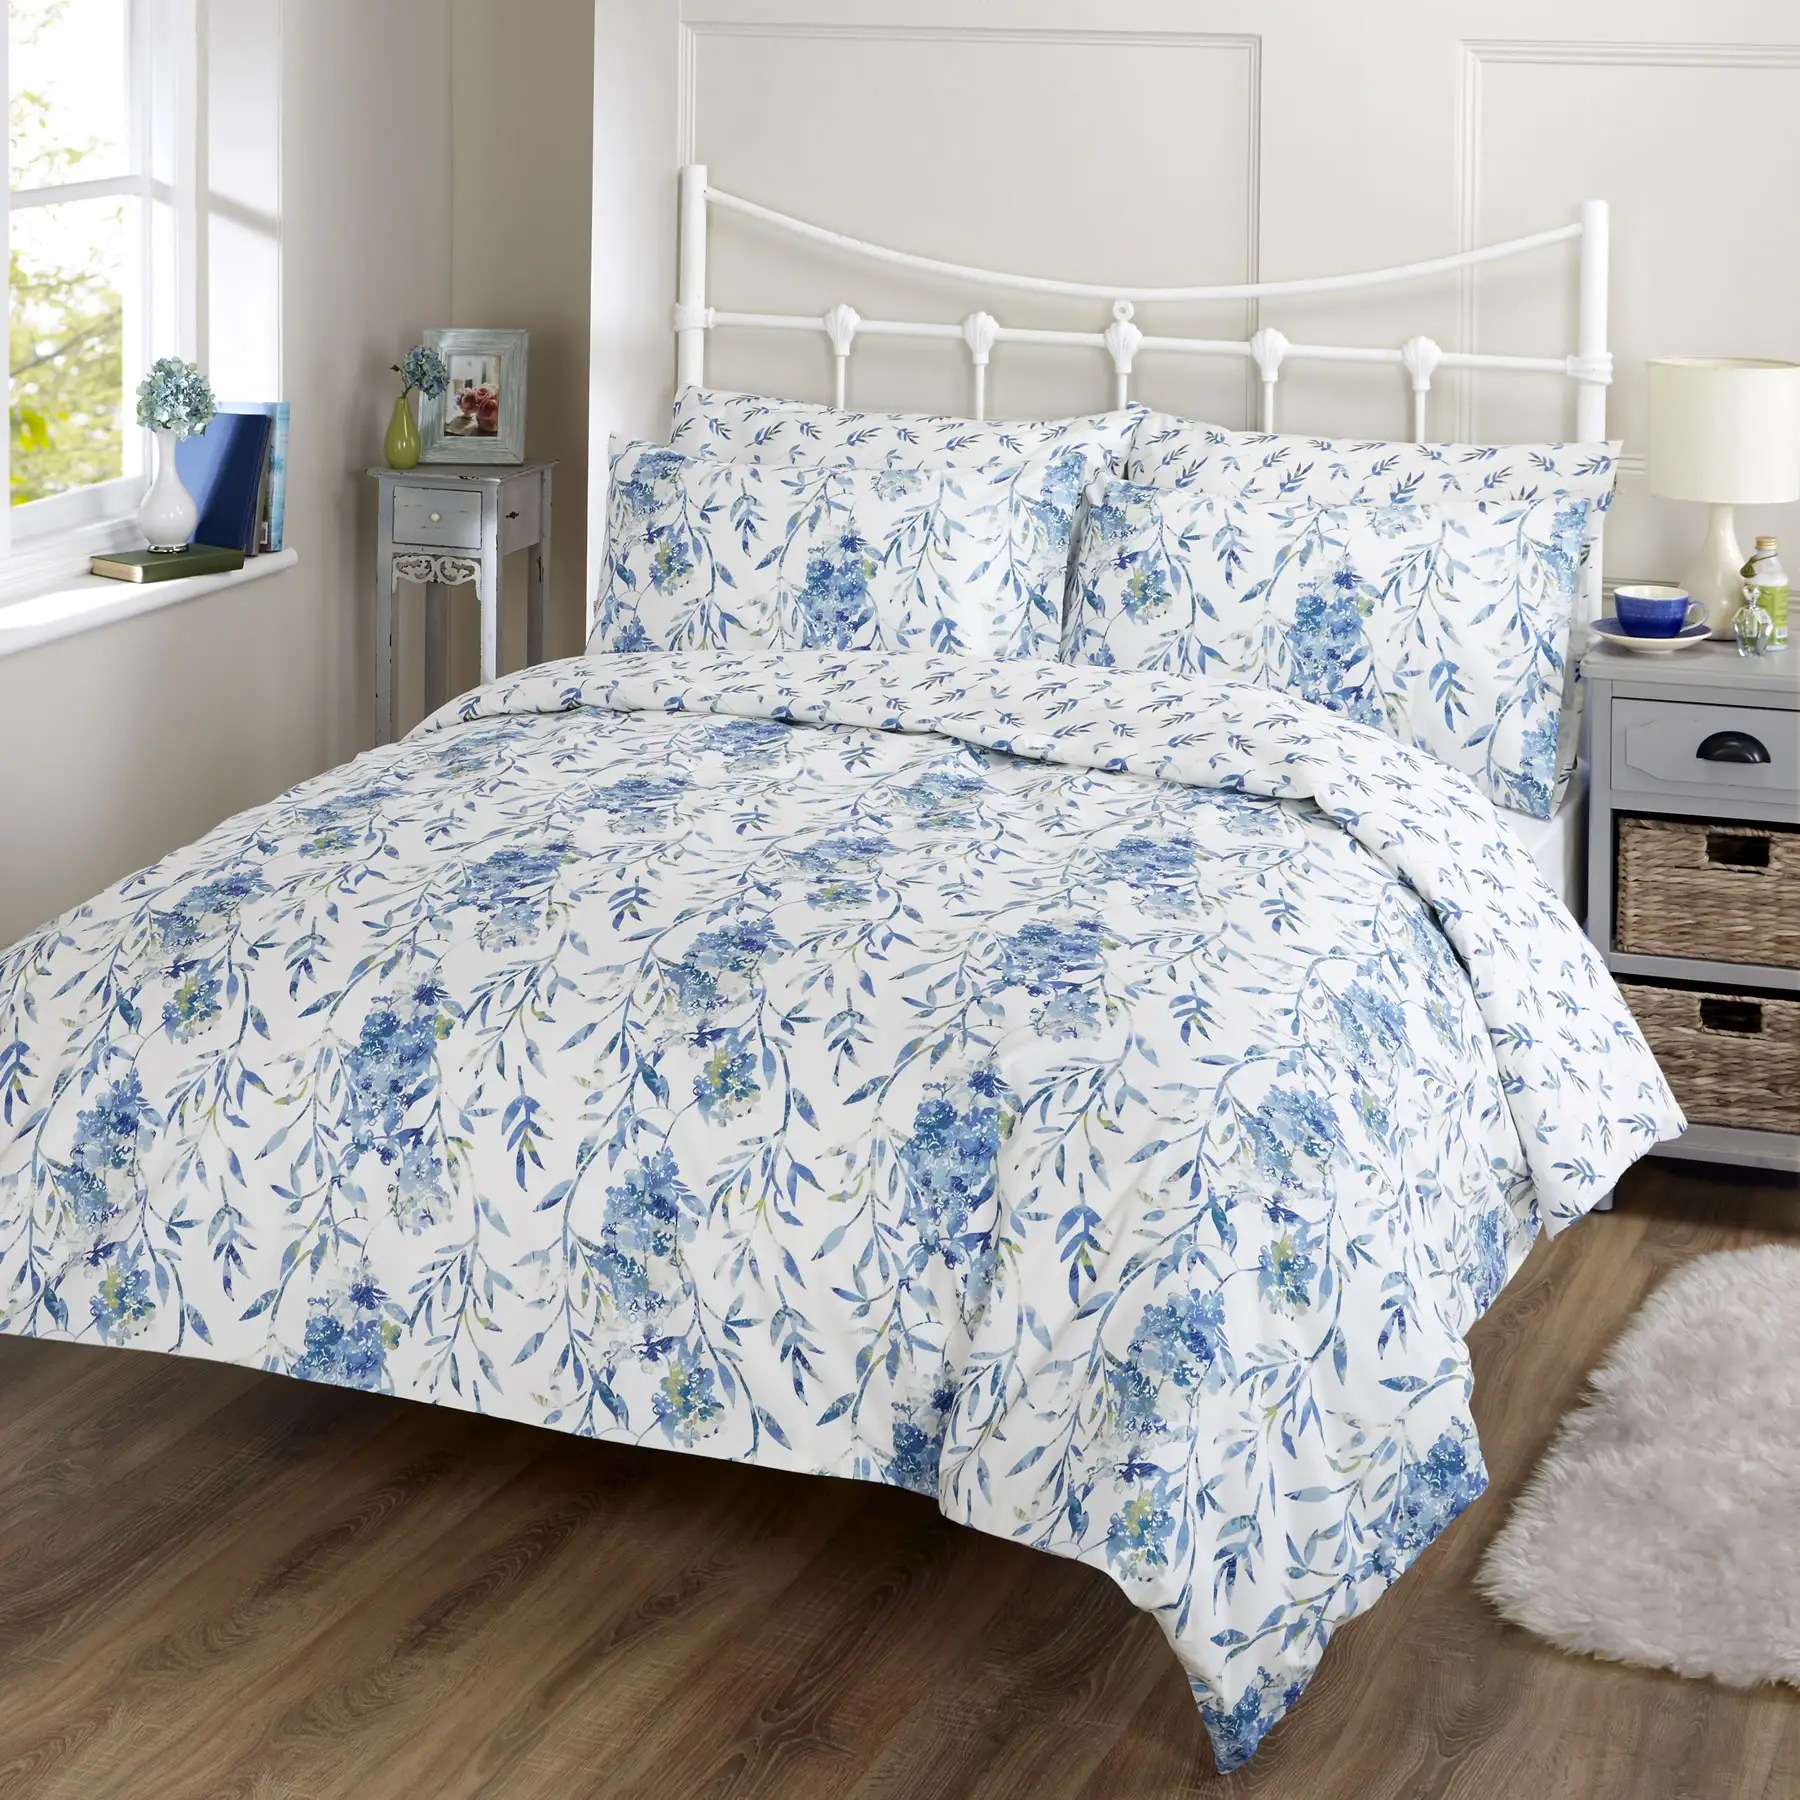 Cotton Bed Linen Sale Enjoy Discounts And Savings With The Just Linen Bedding Sale